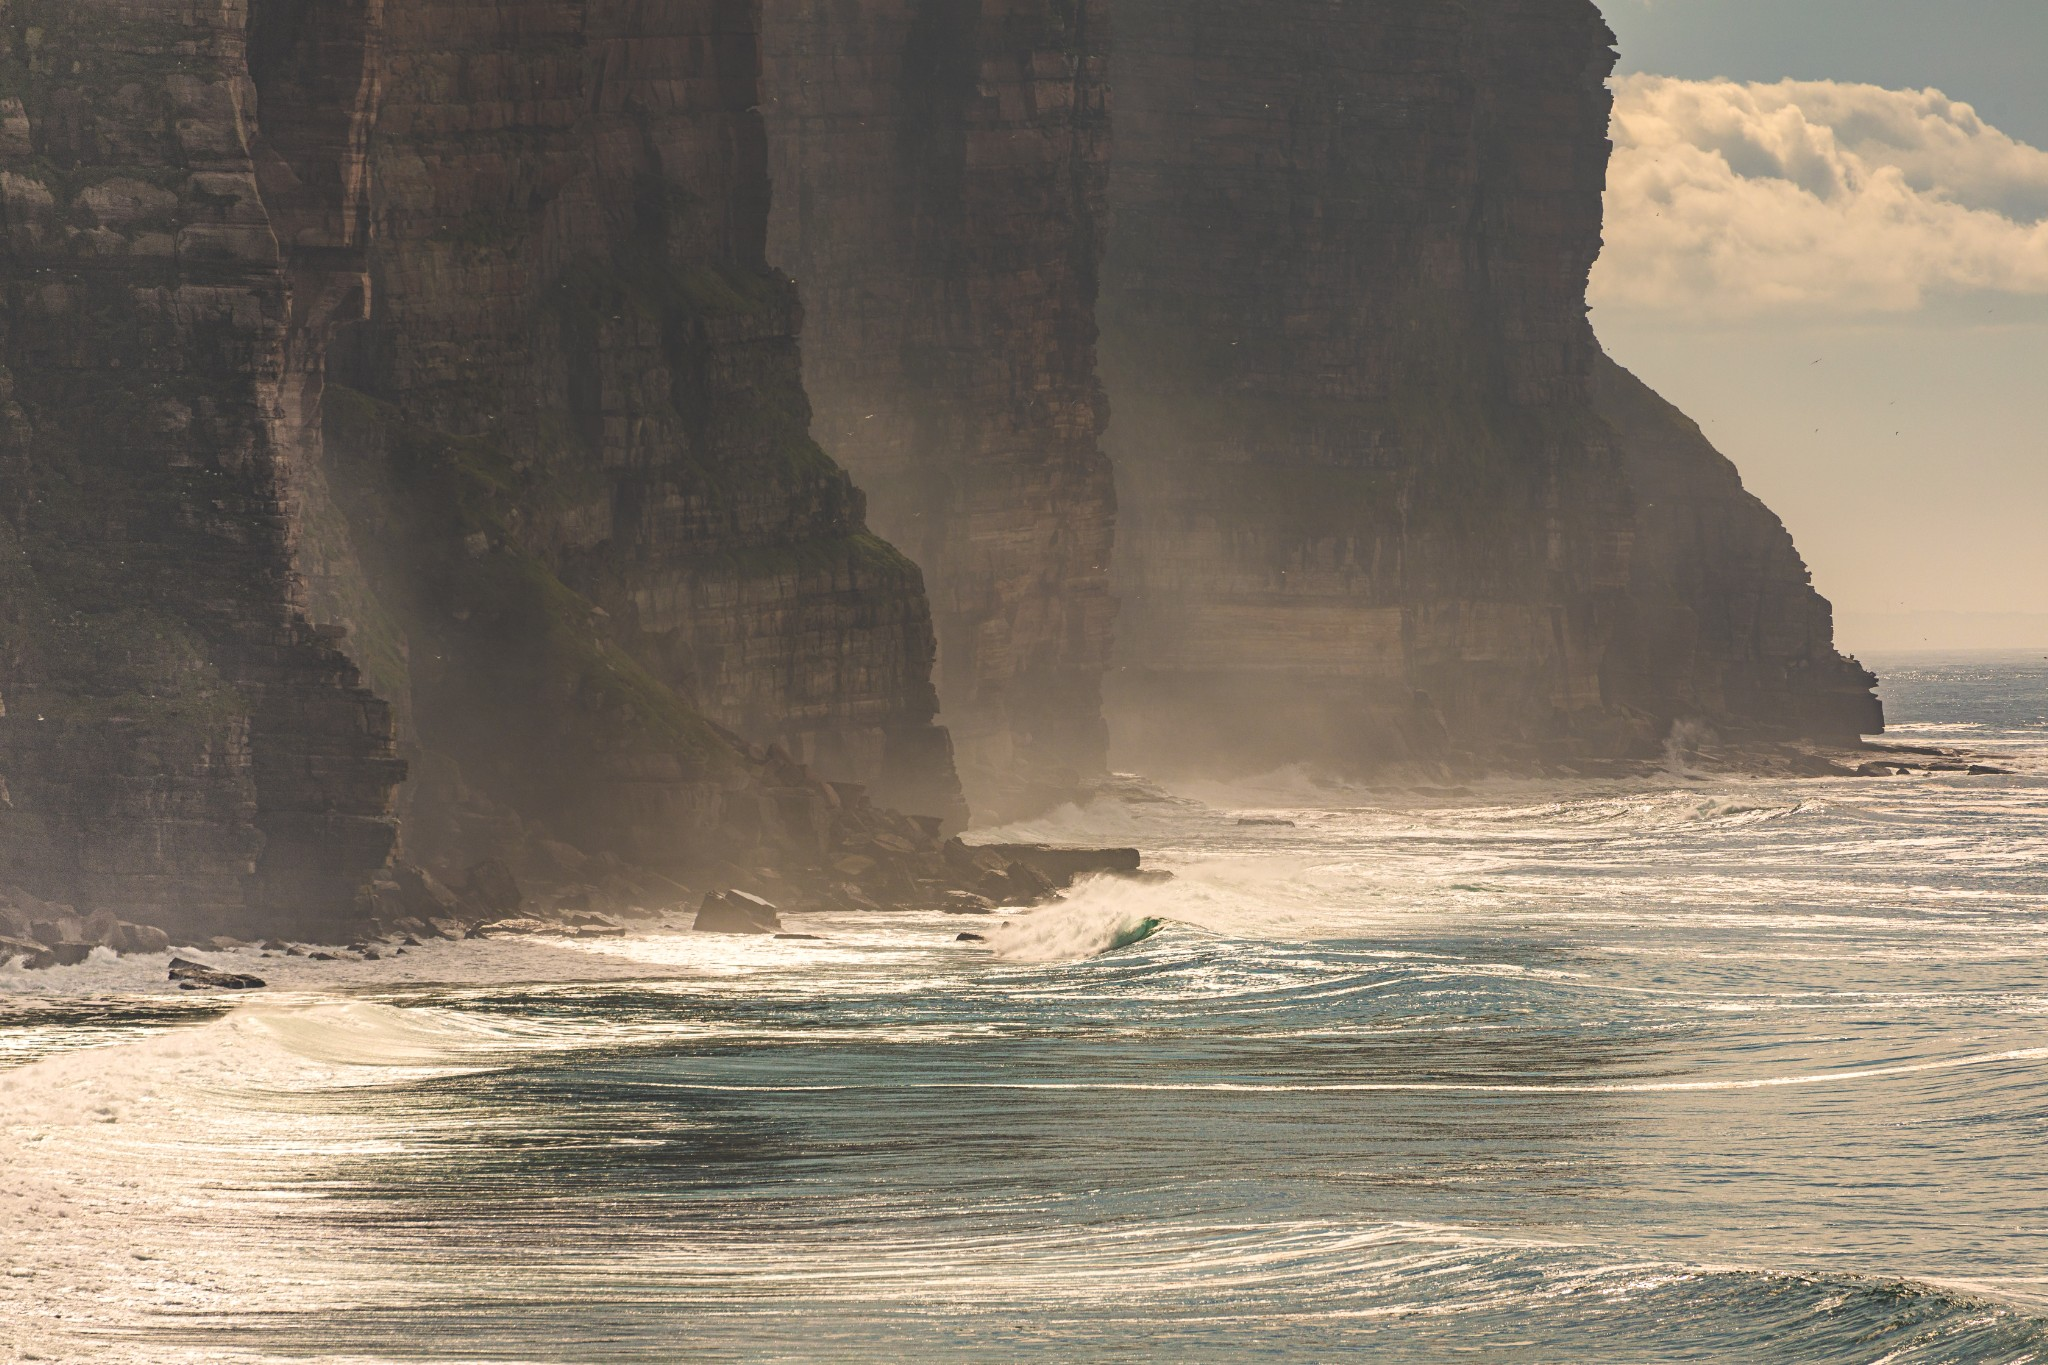 Cliffs at Rackwick, Orkney - image by Ally Velzian